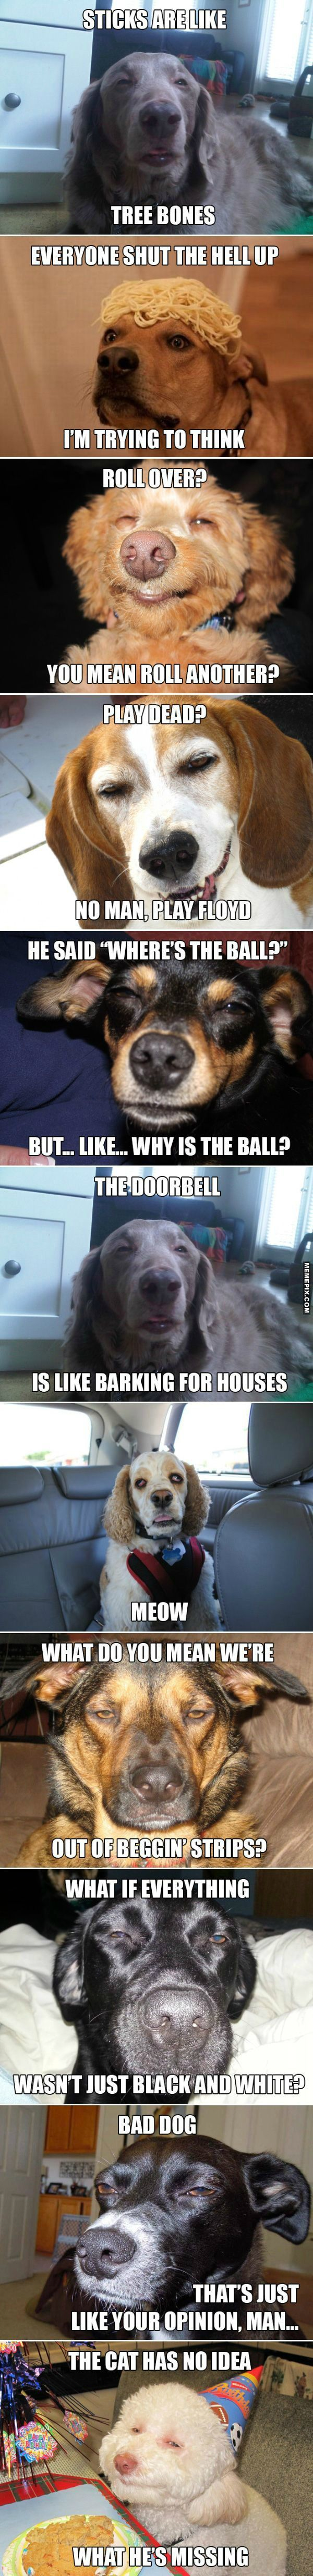 Stoner dogs. bahaha. I sometimes Darla must  have a hash dealer or something...